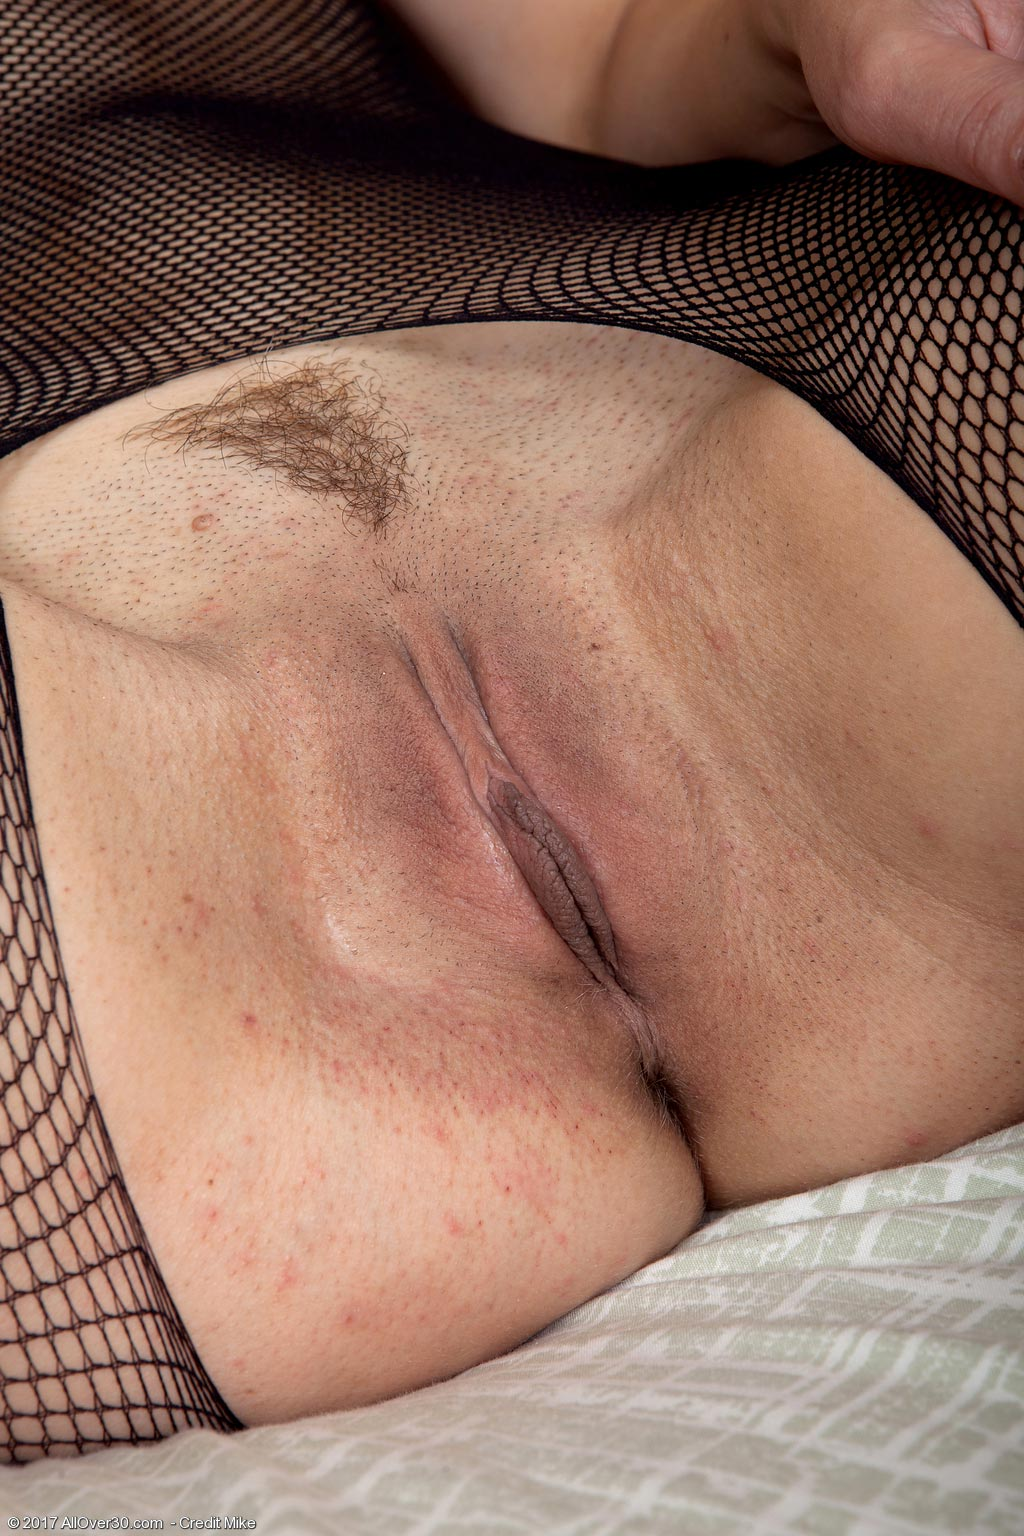 fishnet gay porn , gay male tube , he came inside my hot wife , big ass milf wife , real amateur wife , real amateur wife sex videos , the hot mommy ,